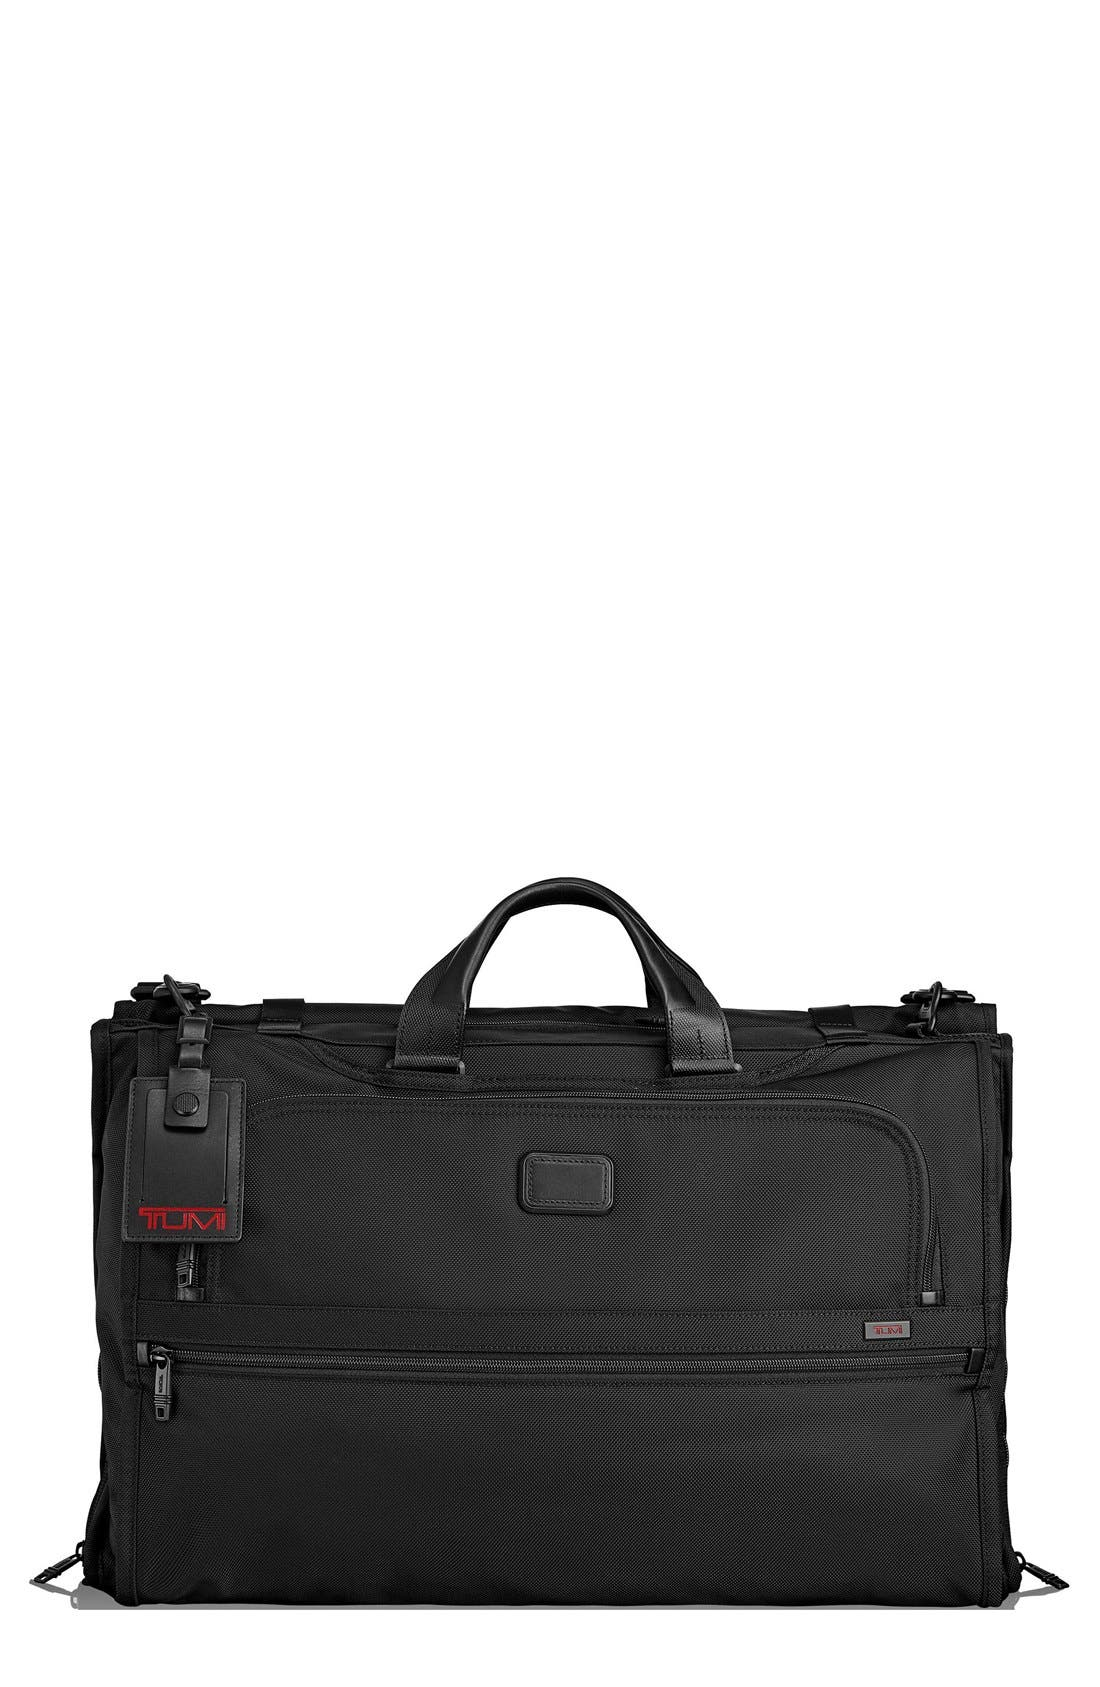 TUMI 'Alpha 2' Trifold Carry-On Garment Bag